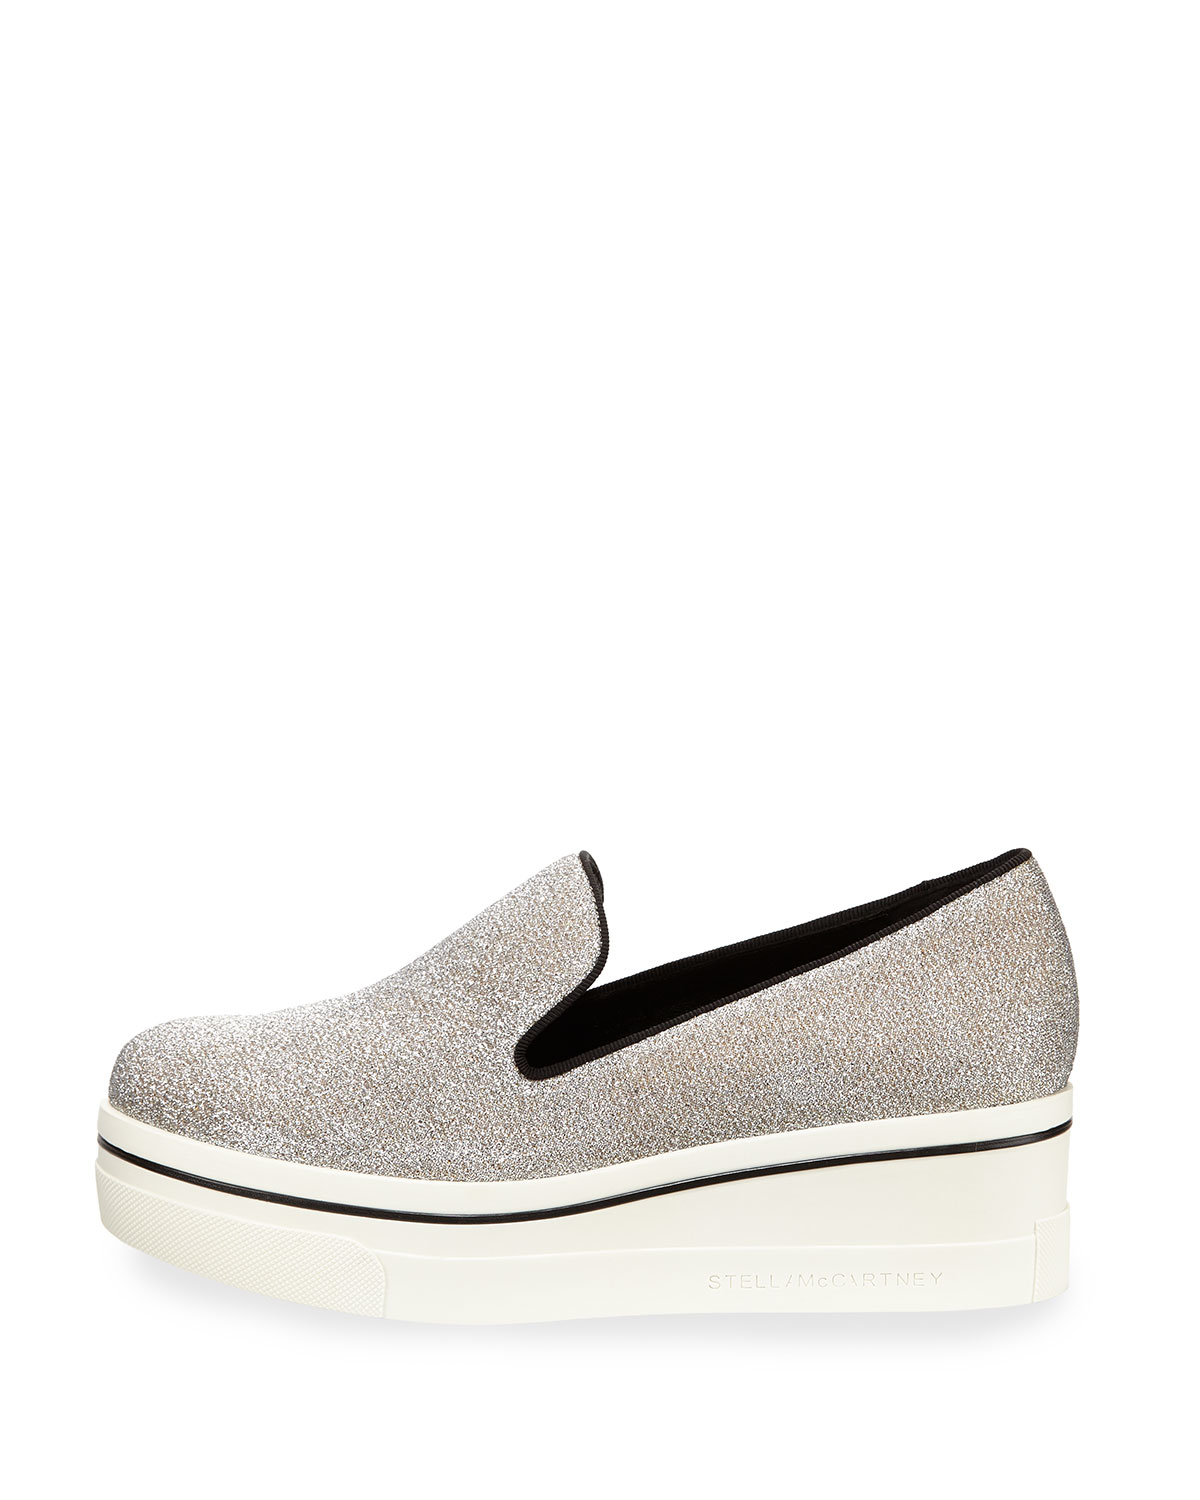 Silver Stella Slip-On Sneakers Stella McCartney Free Shipping Outlet Locations Excellent Cheap Online CUTiZ0J